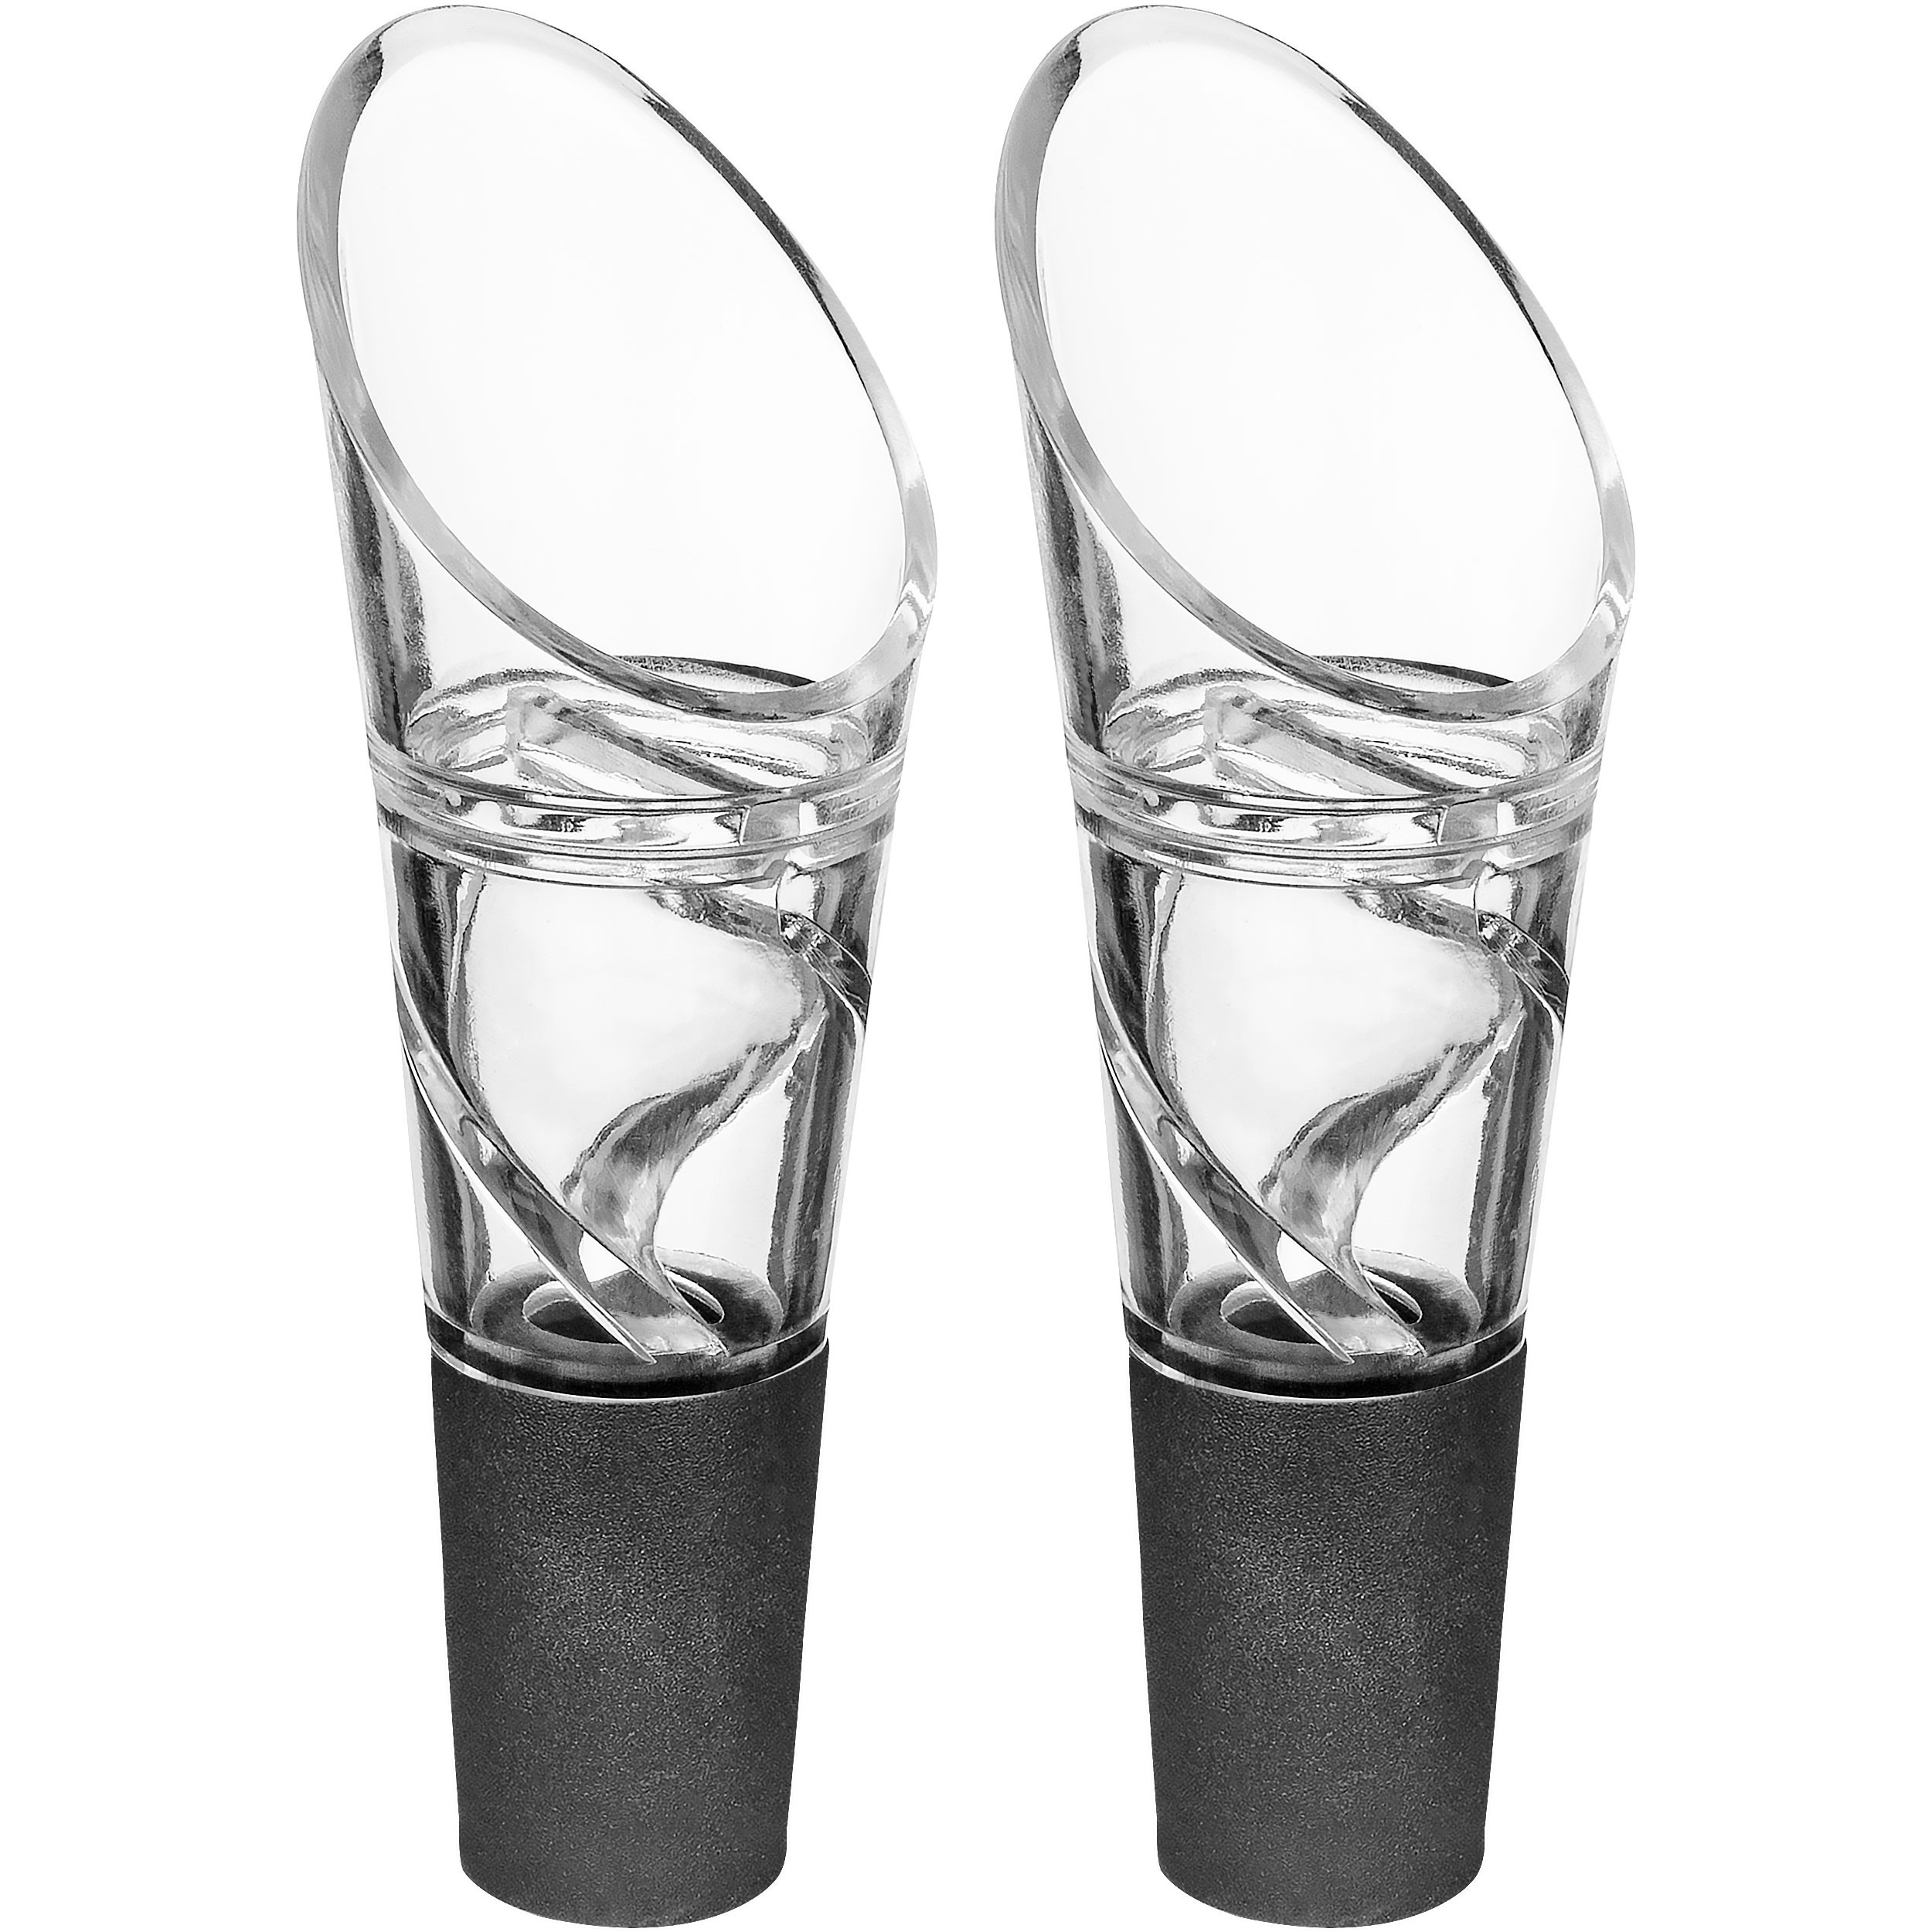 Wine Aerator Pourer Spout Dispenser